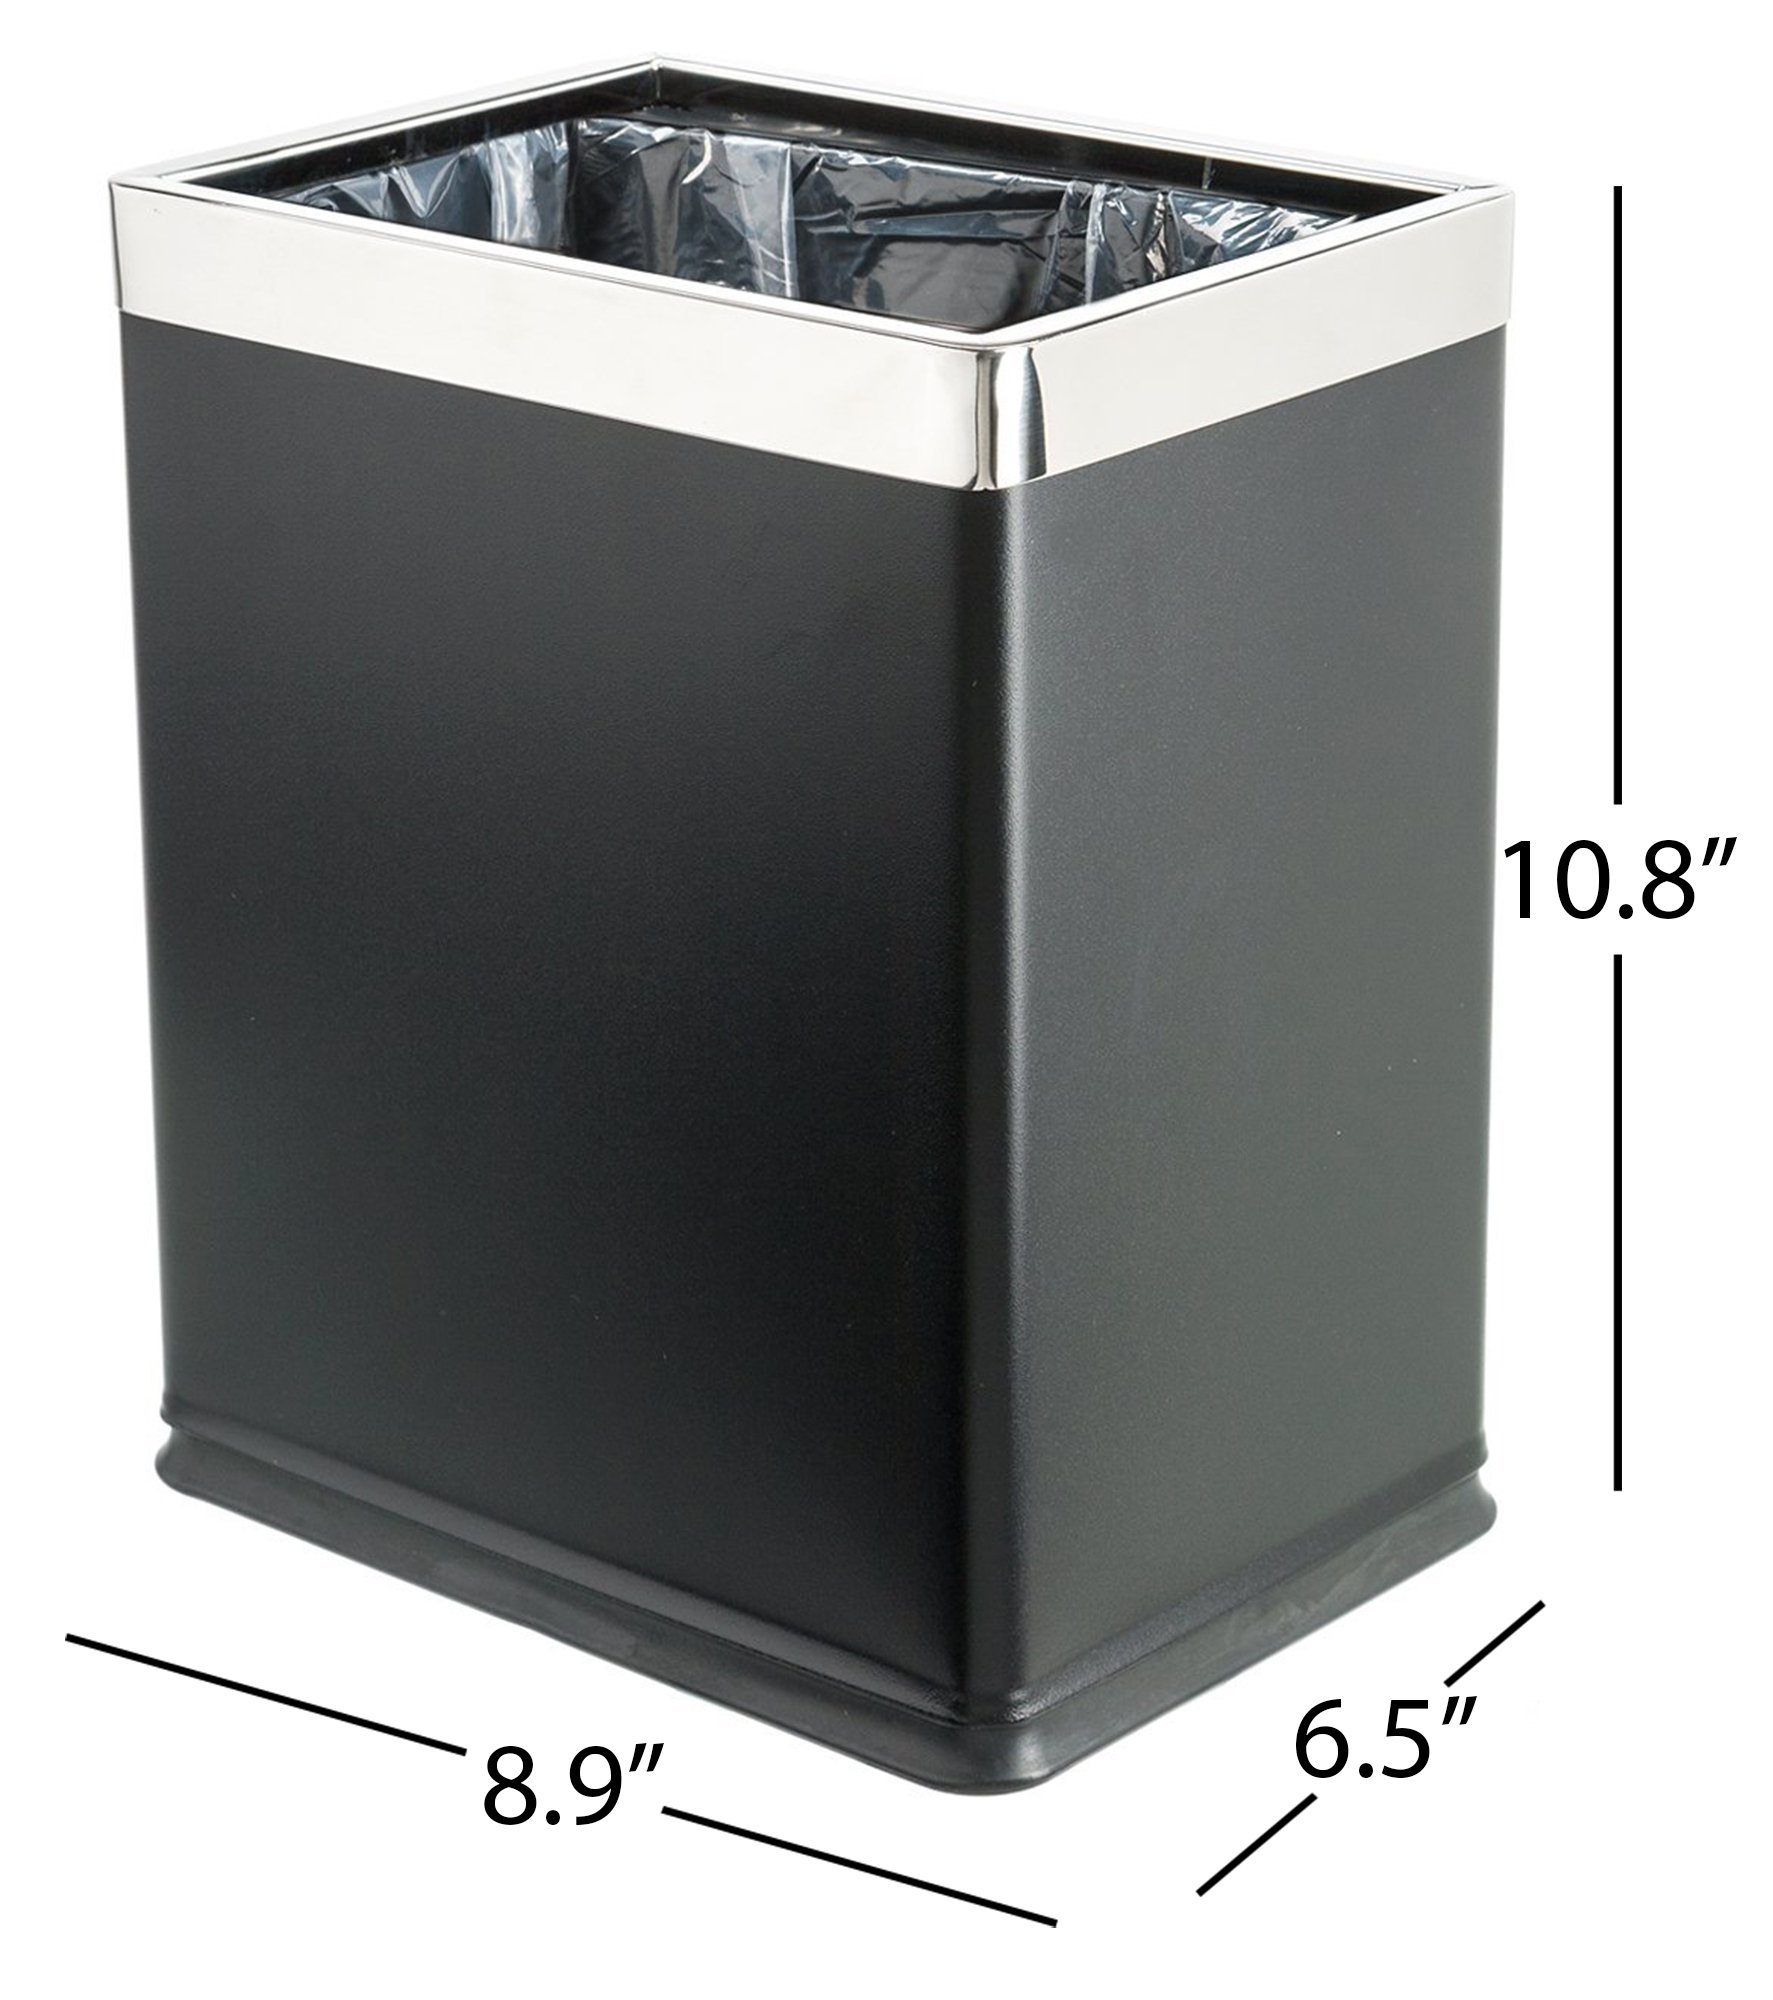 Brelso 'Invisi-Overlap' Open Top Metal Trash Can, Small Office Wastebasket, Modern Home Décor, Rectangle Shape (Black)